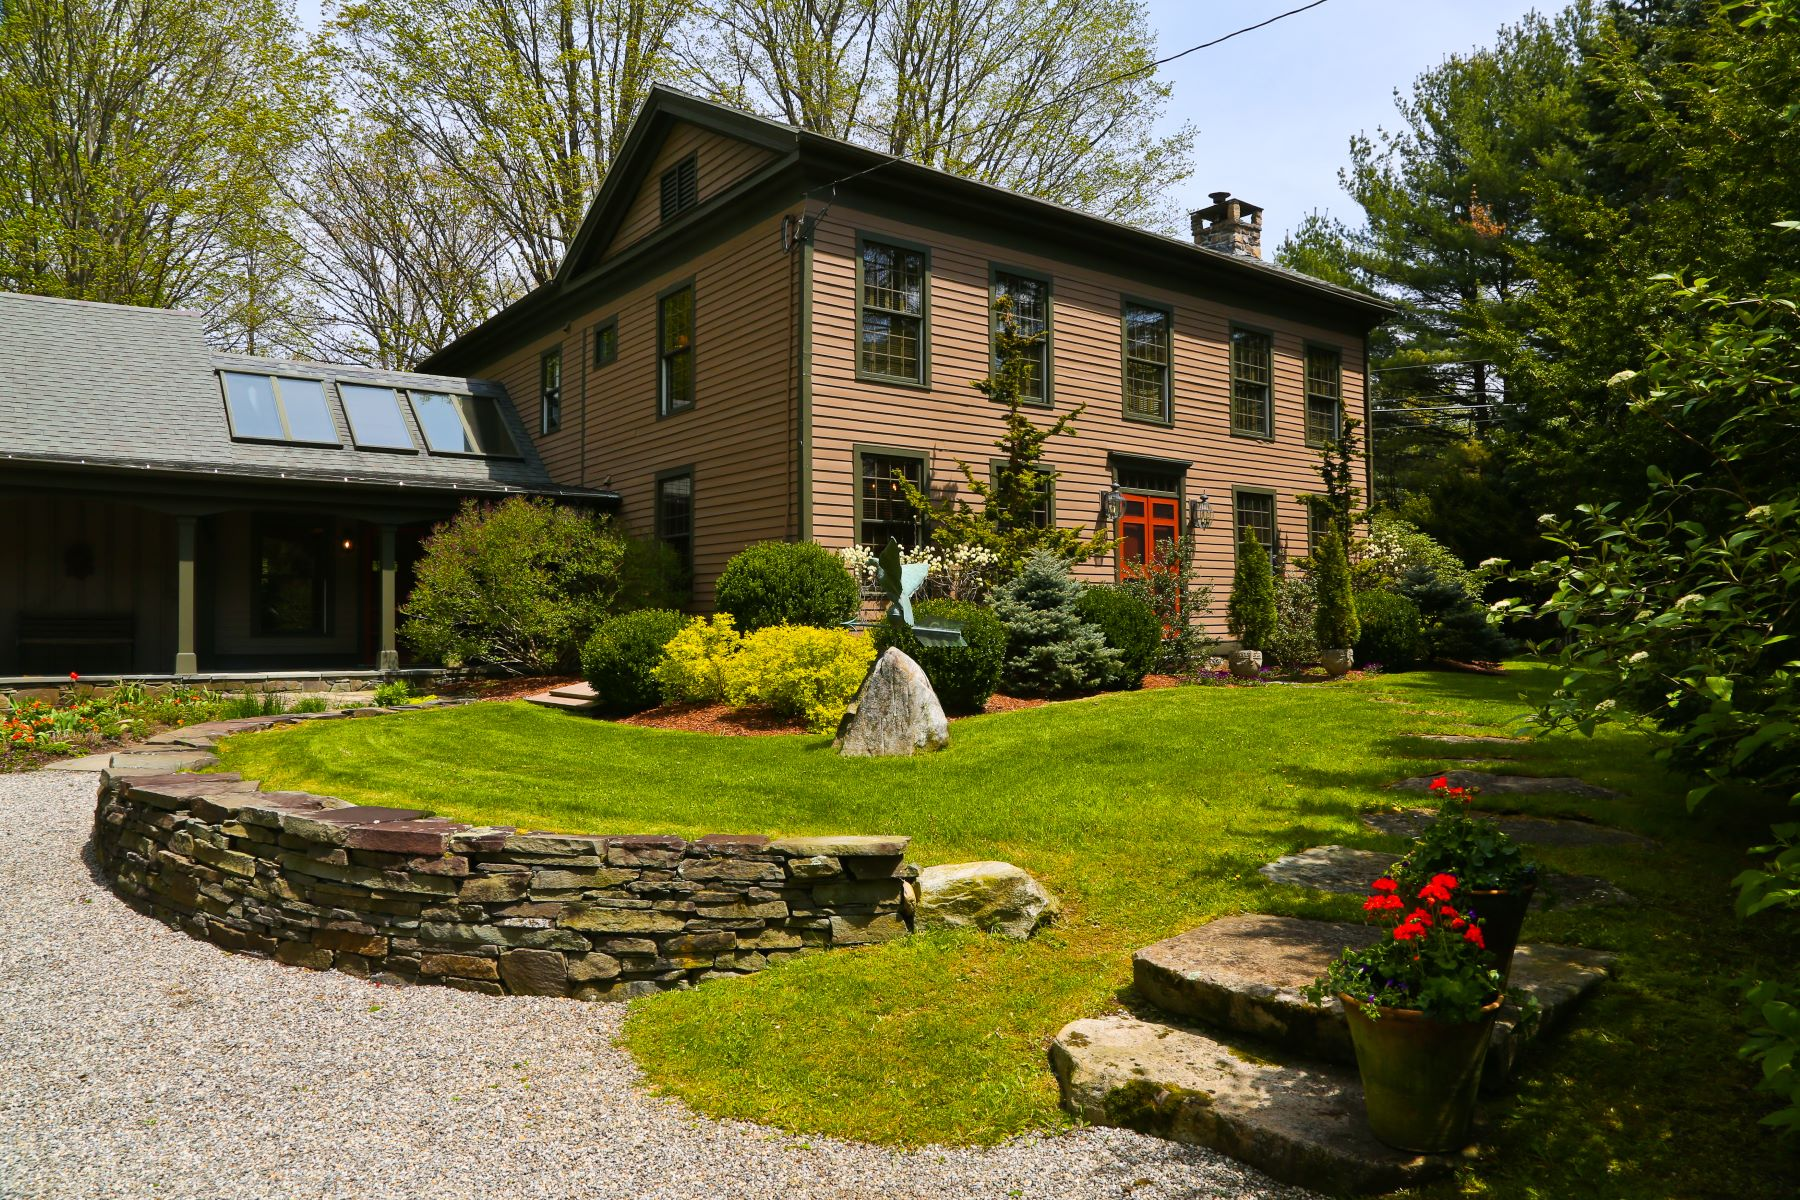 Single Family Home for Sale at Turn-key, Historic Colonial in Magical Setting 0 & 399 State Rd Great Barrington, Massachusetts 01230 United States